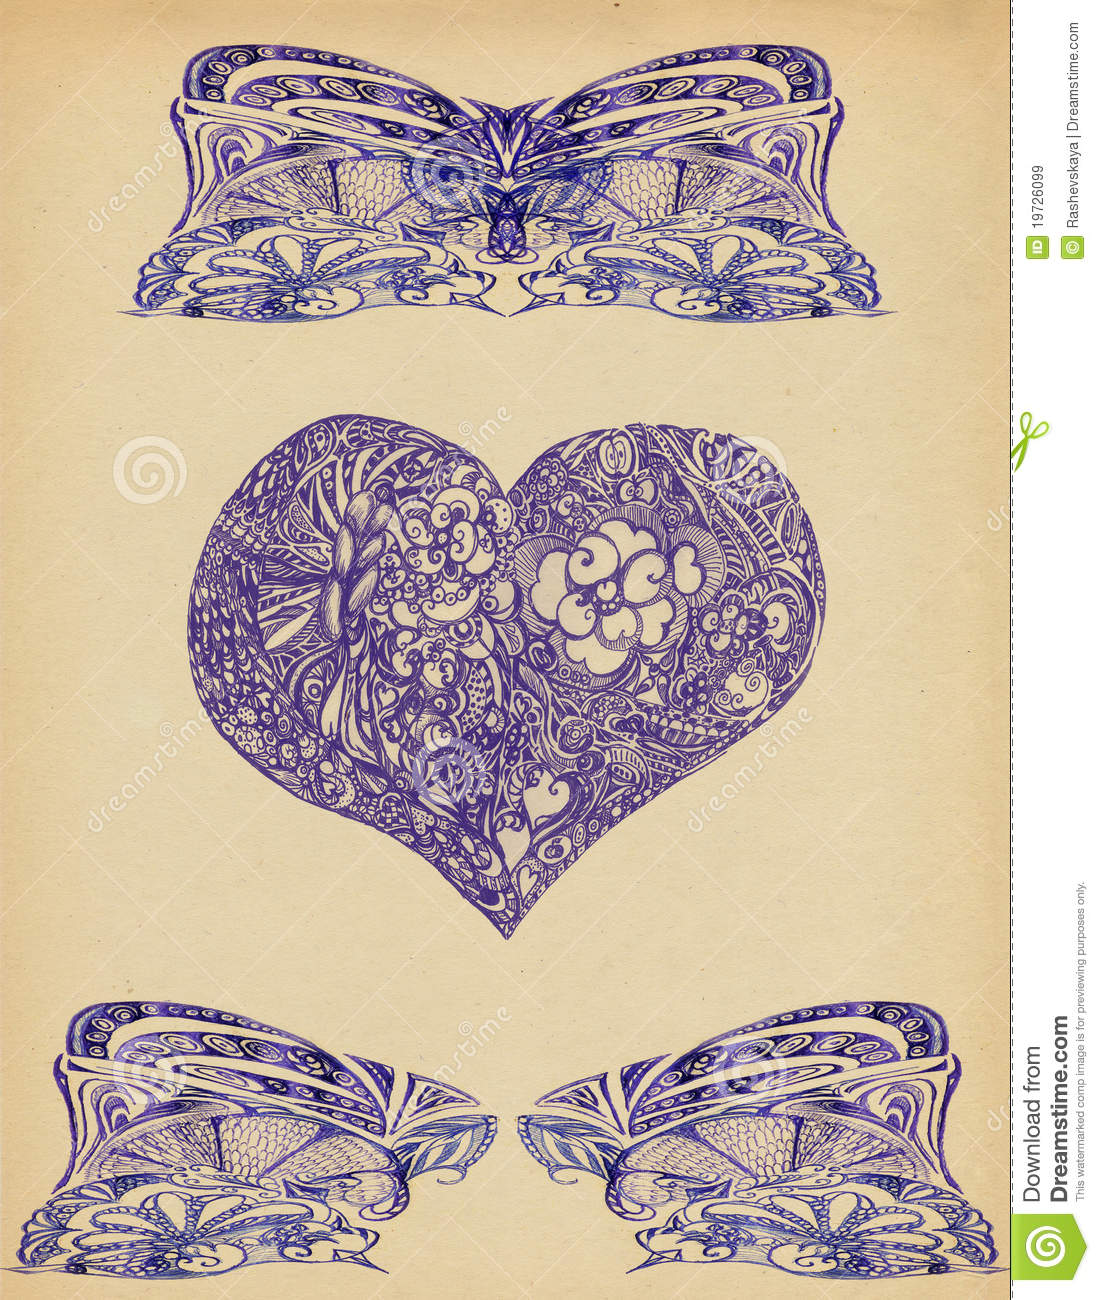 Background with patterns and heart